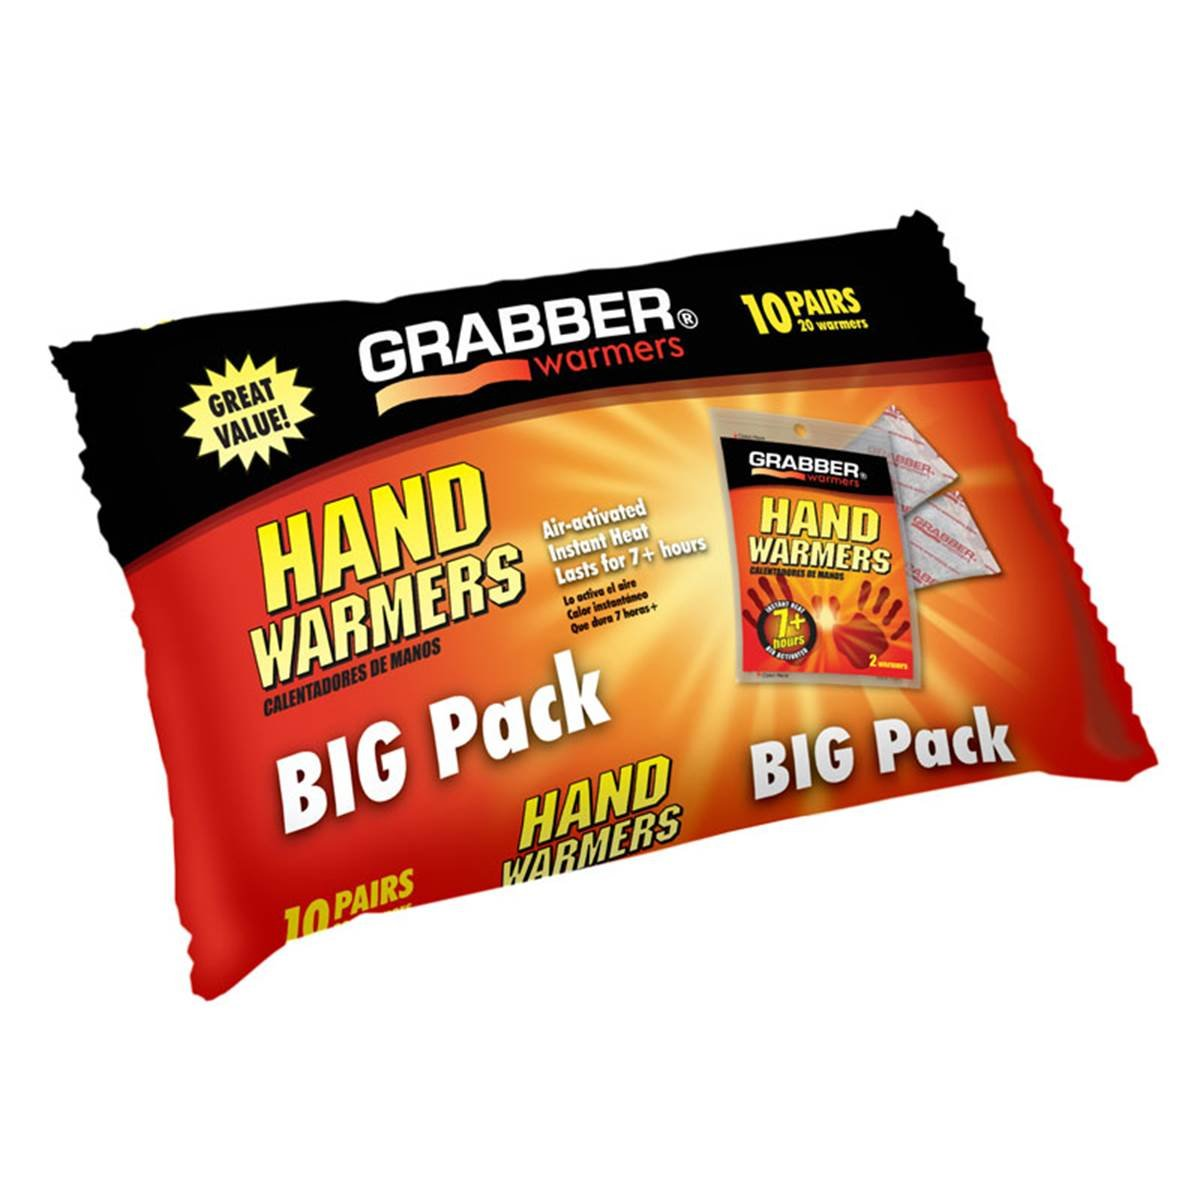 80 Grabber 40 Pairs Grabber Warmers Big Pack 7 Hours Hand Warmers